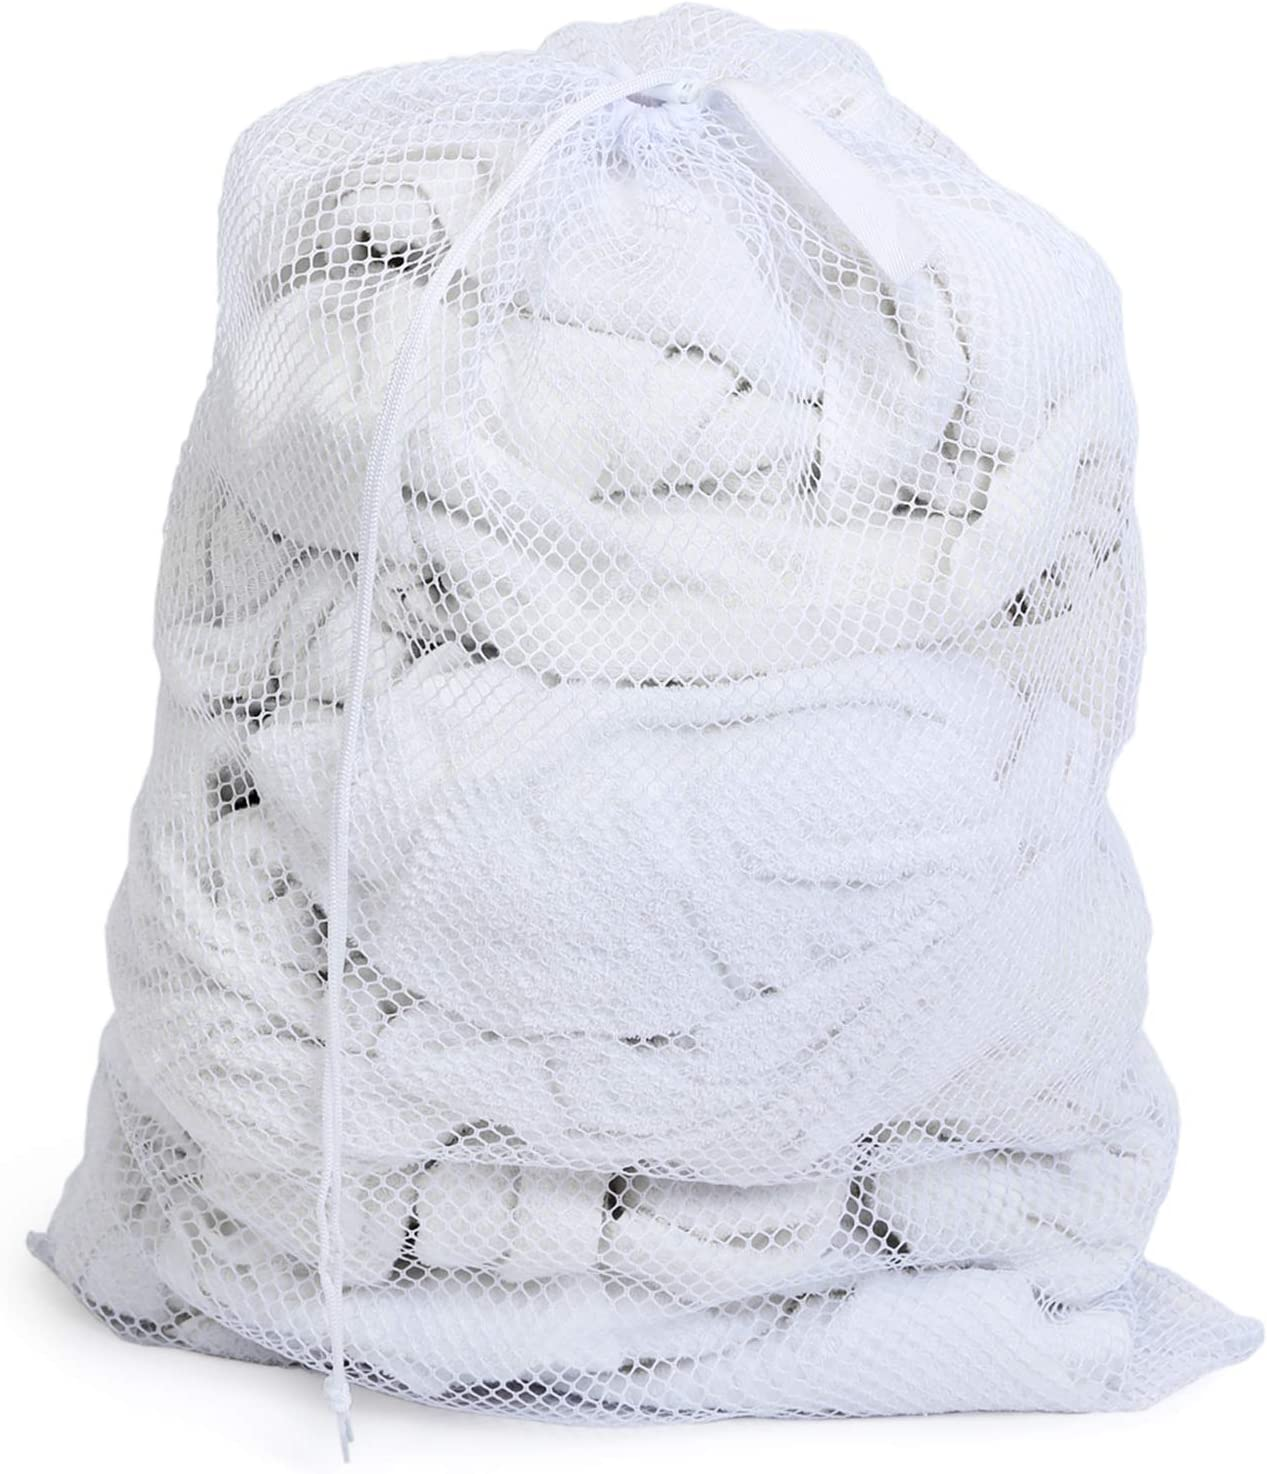 Smart Design Heavy Duty Mesh Laundry Bag w/ Push Lock Drawstring - VentilAir Mesh Material - for Clothes & Laundry - Home Organization (Holds 3 Loads) (36 x 24 Inch) [White]